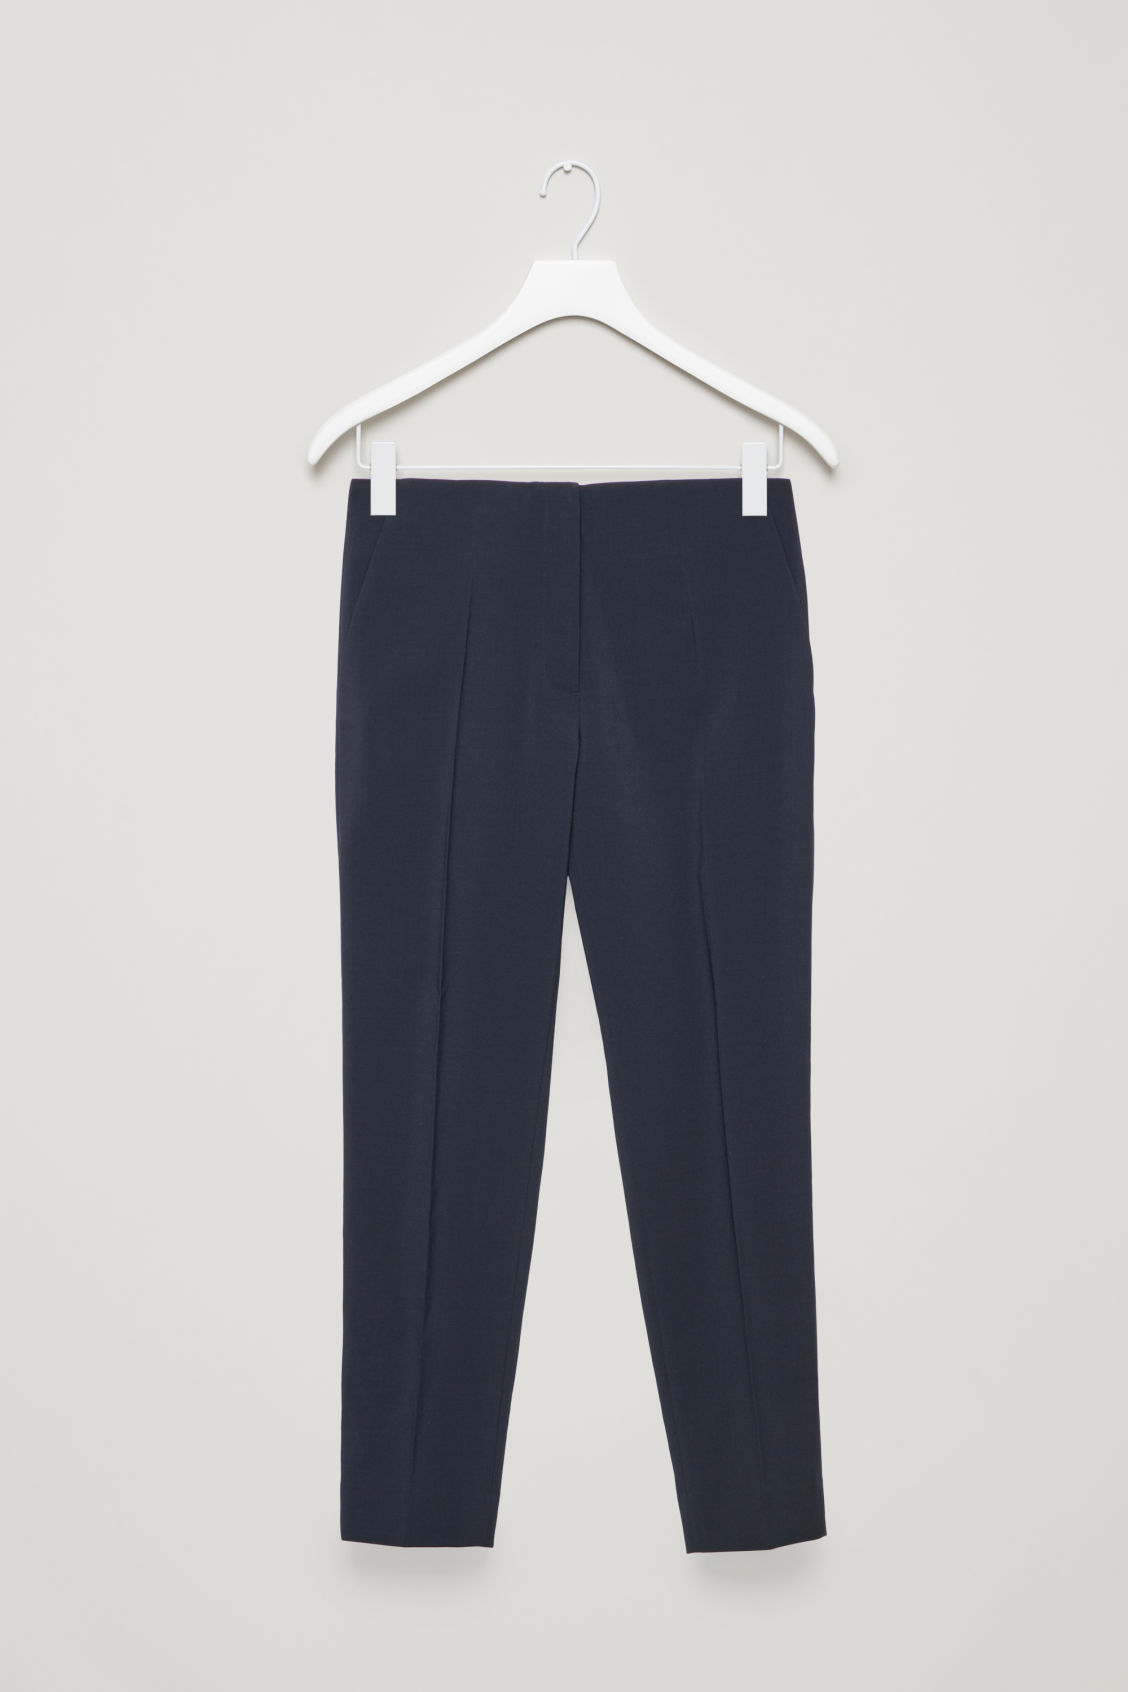 Straight Pressed Fold Trousers by Cos $99